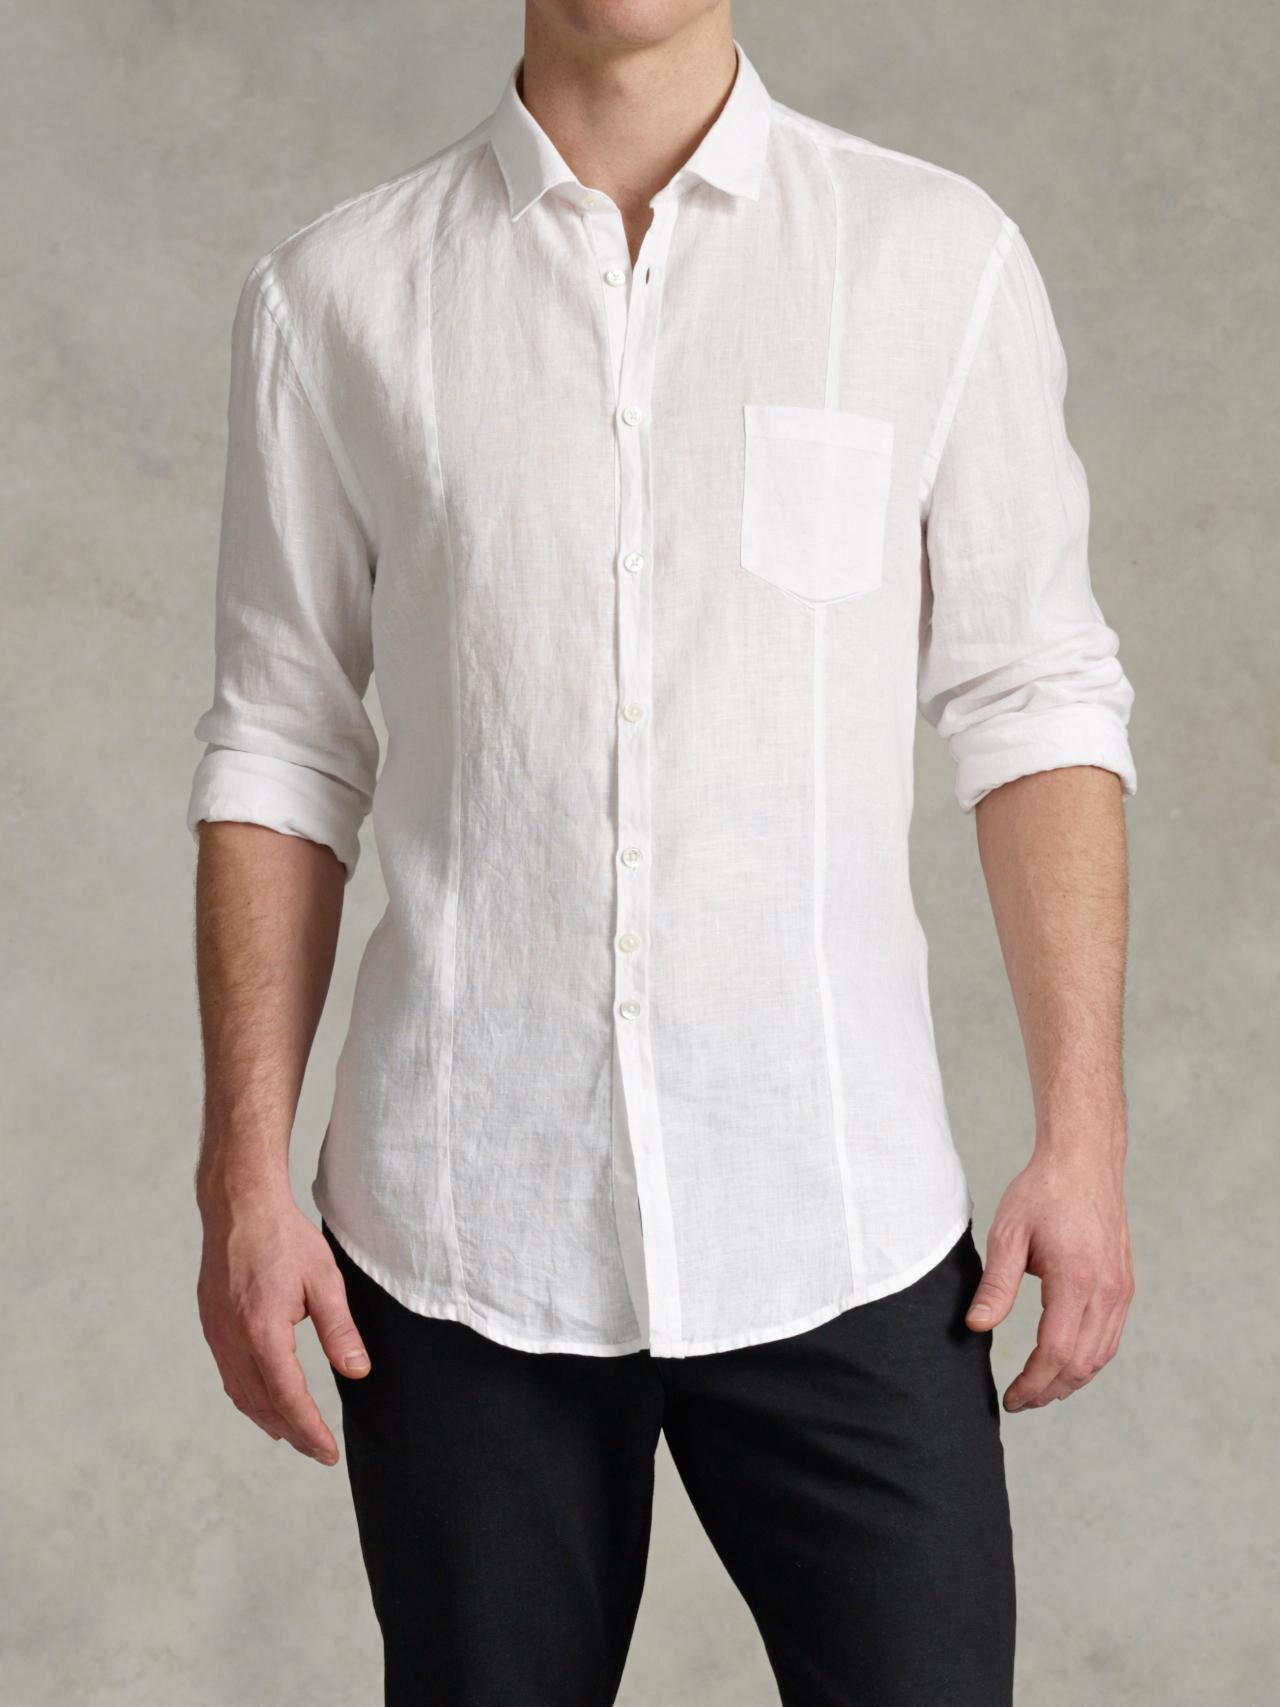 John Varvatos Slim Fit Linen Button up Shirt In White For